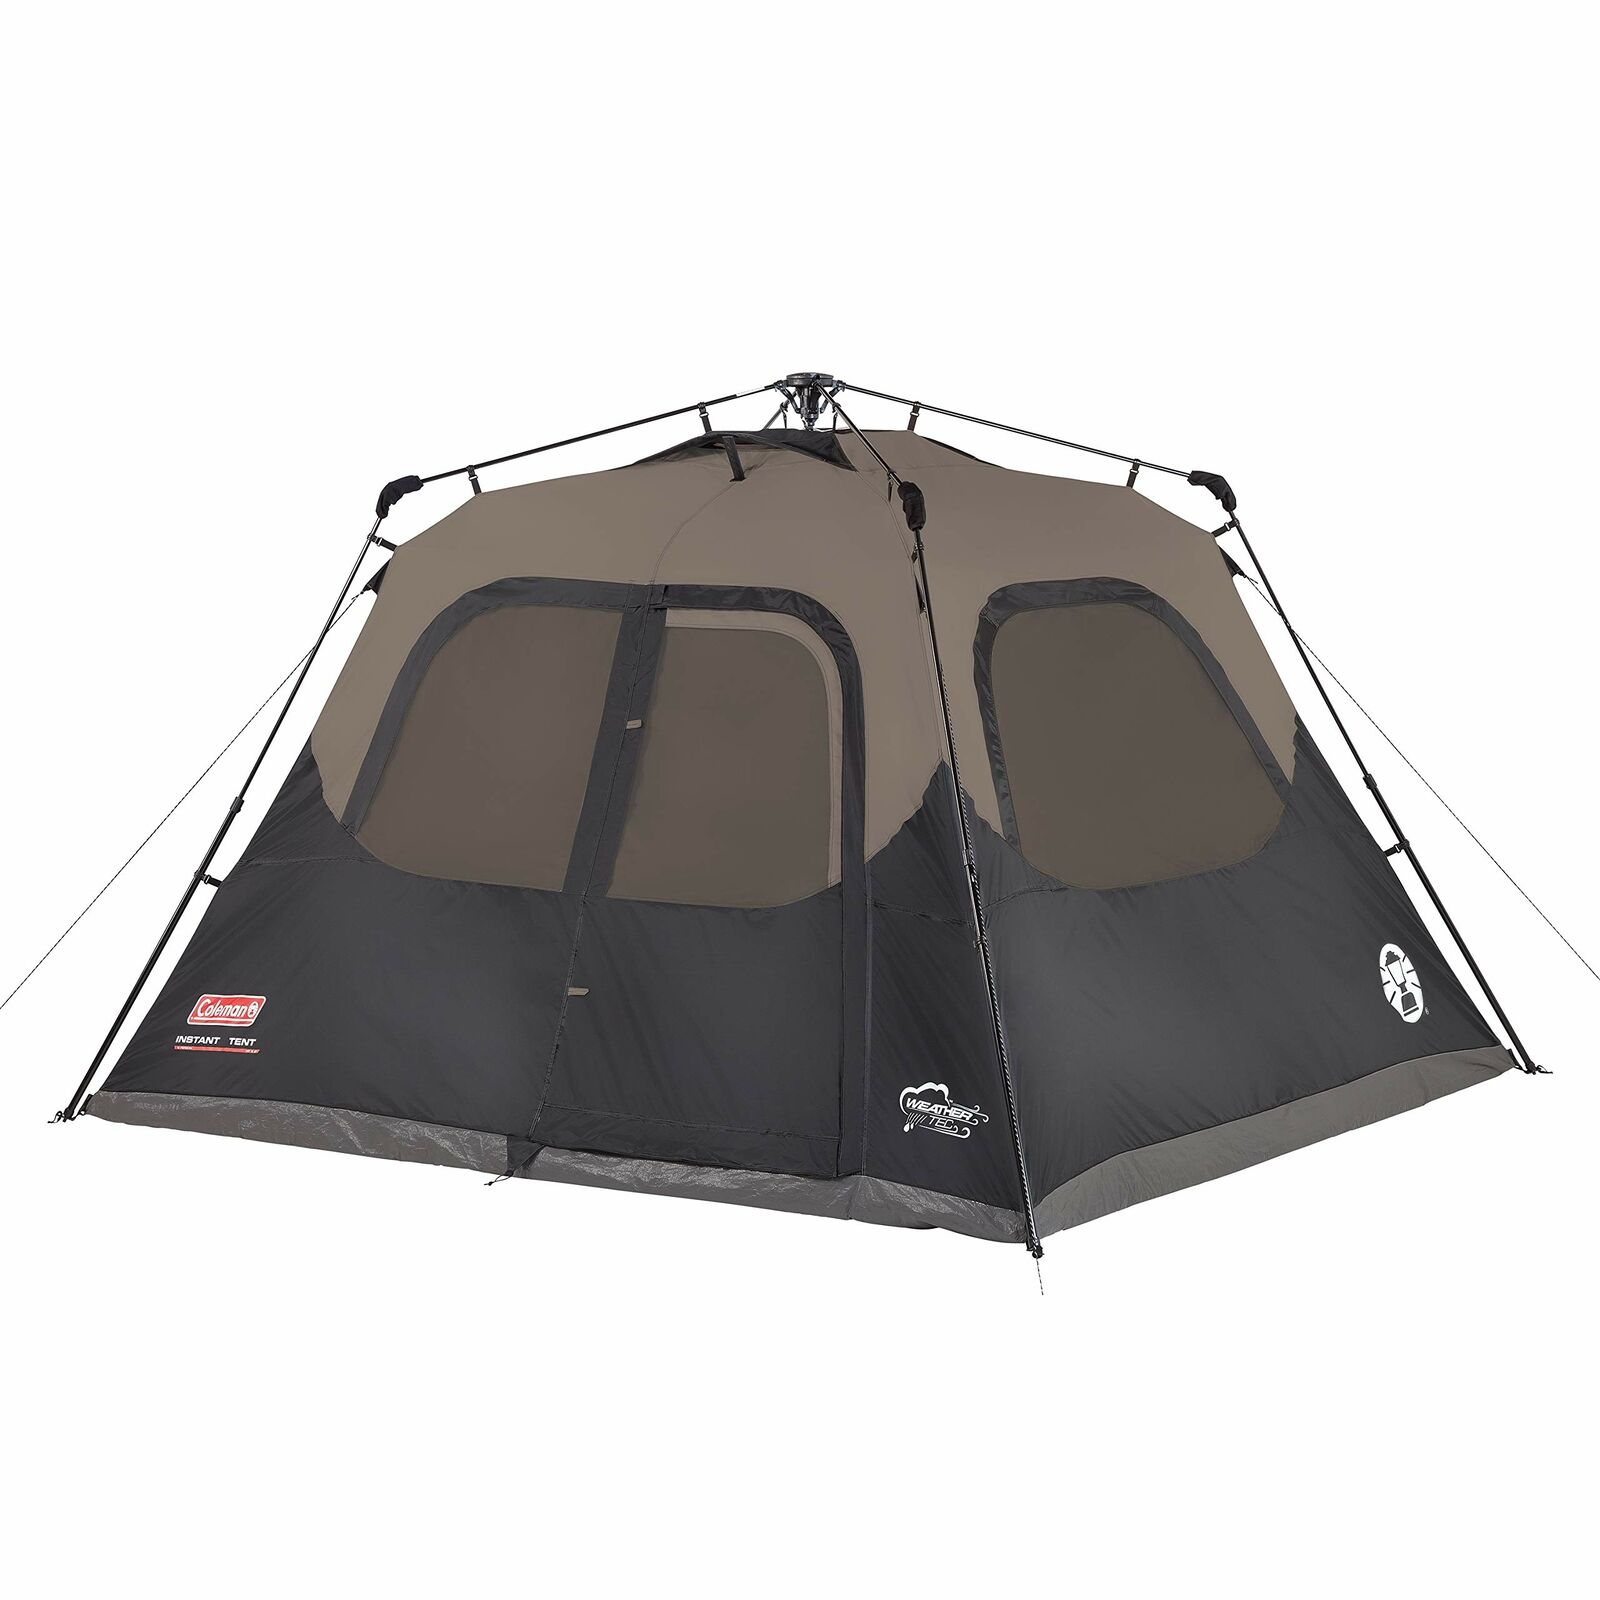 Coleman 6-Person Cabin Tent with Instant  Setup,Cabin Tent Camping Set Up in 60 S  the best after-sale service